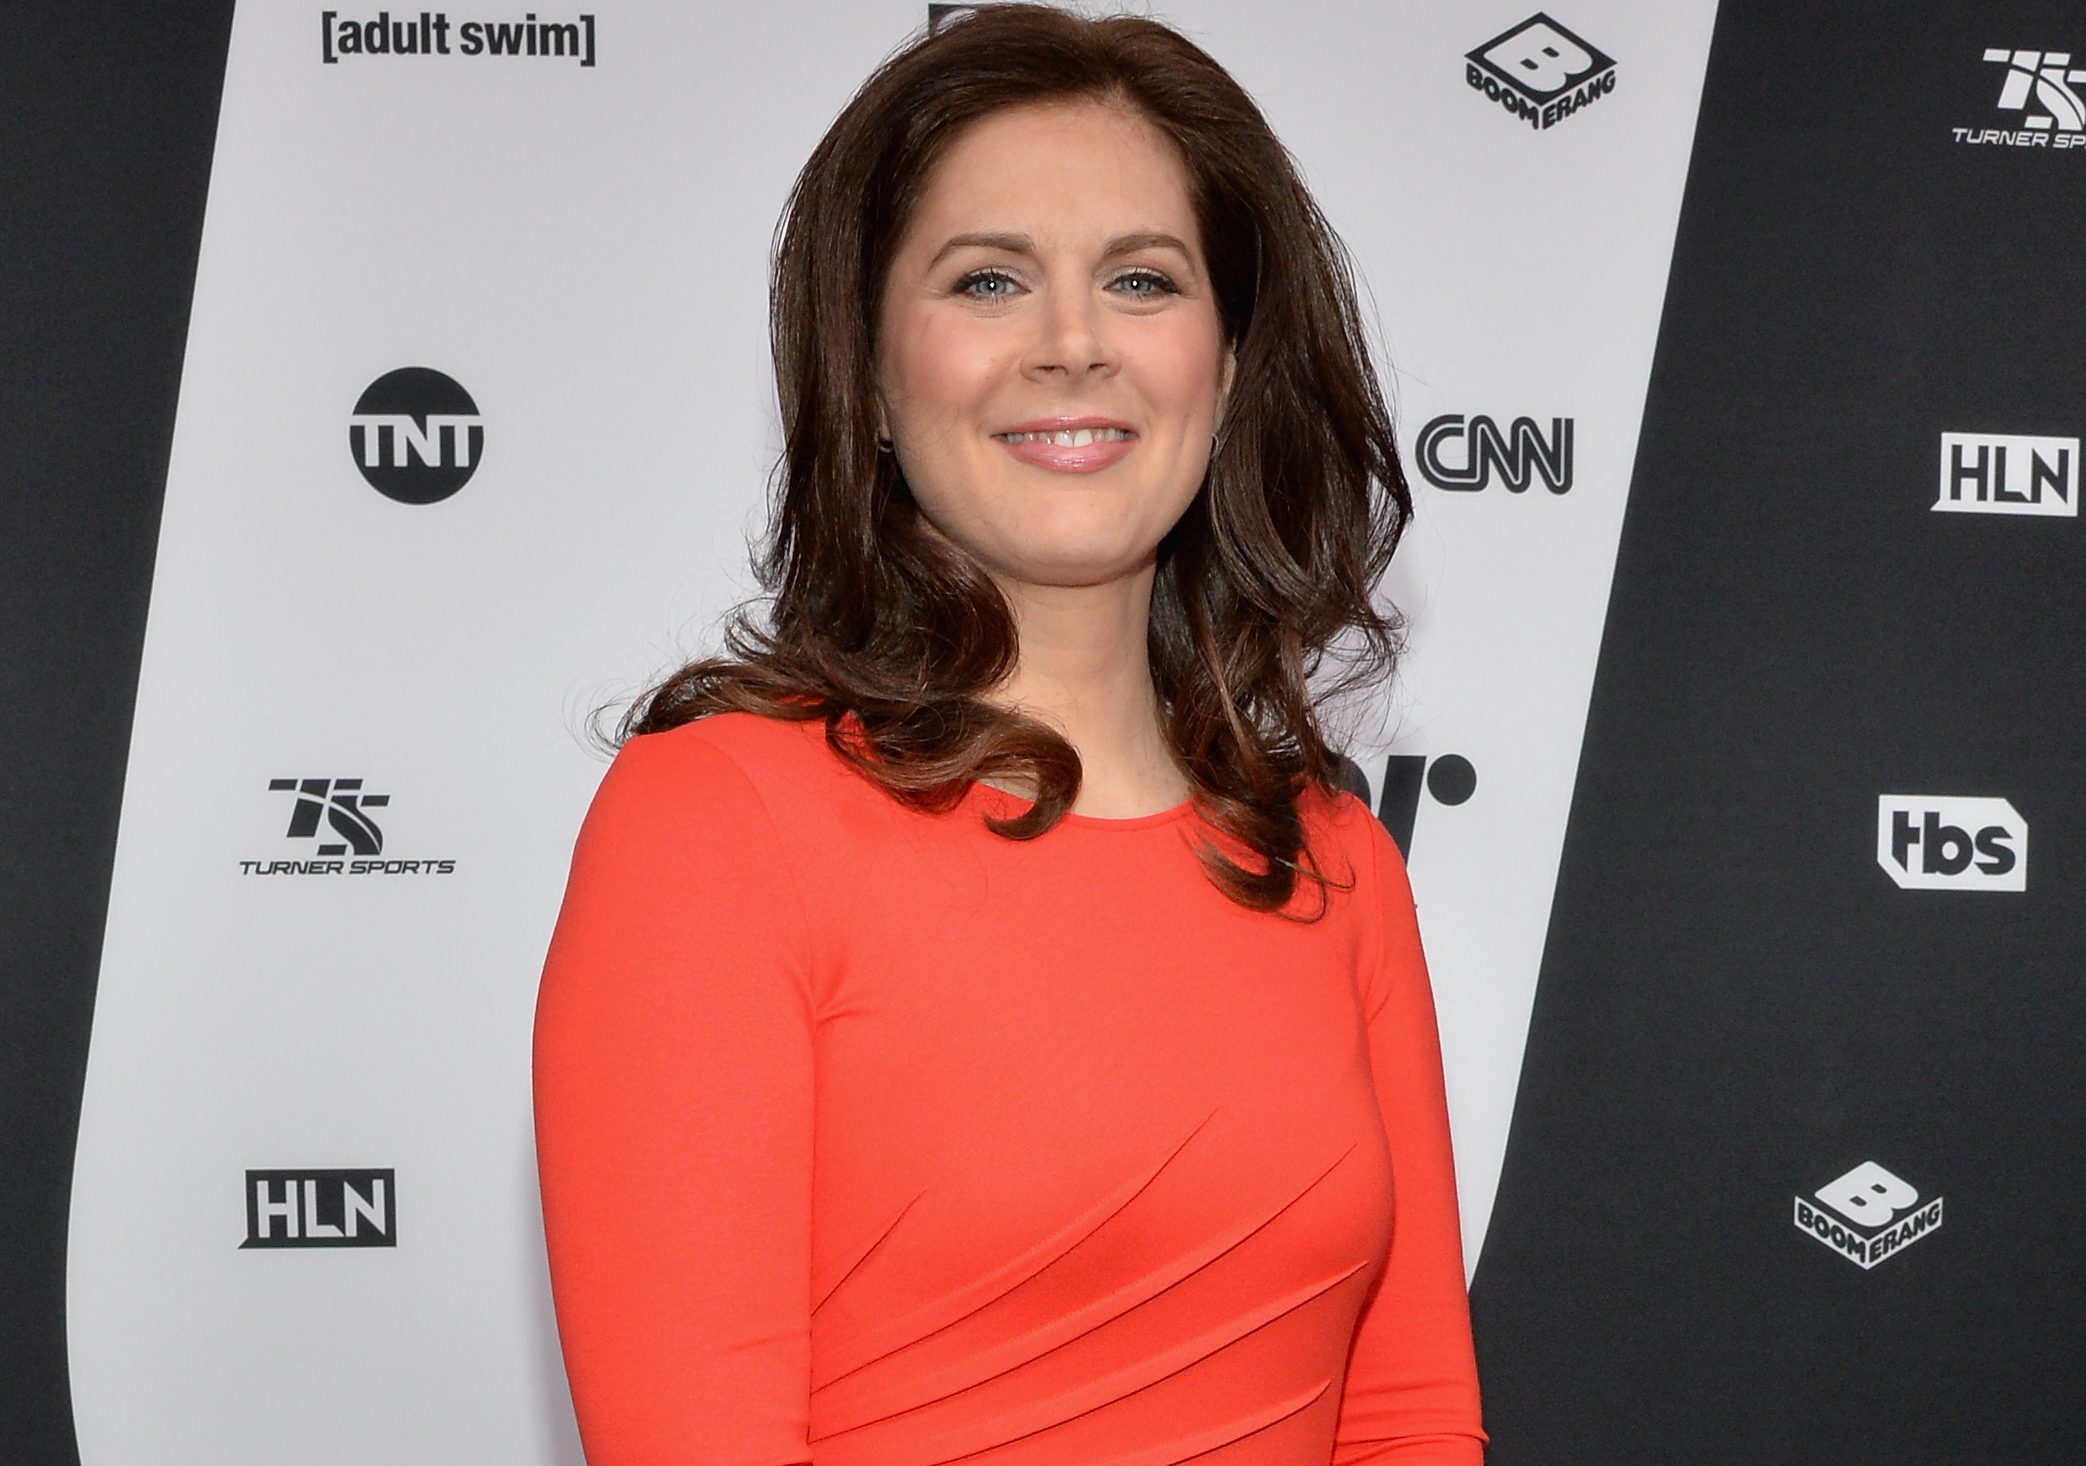 David Rubulotta Erin Burnett S Husband 5 Fast Facts Heavy Com David rubulotta is an american entrepreneur and businessman, who is also famous for being the husband of the cnn financial journalist erin burnett. david rubulotta erin burnett s husband